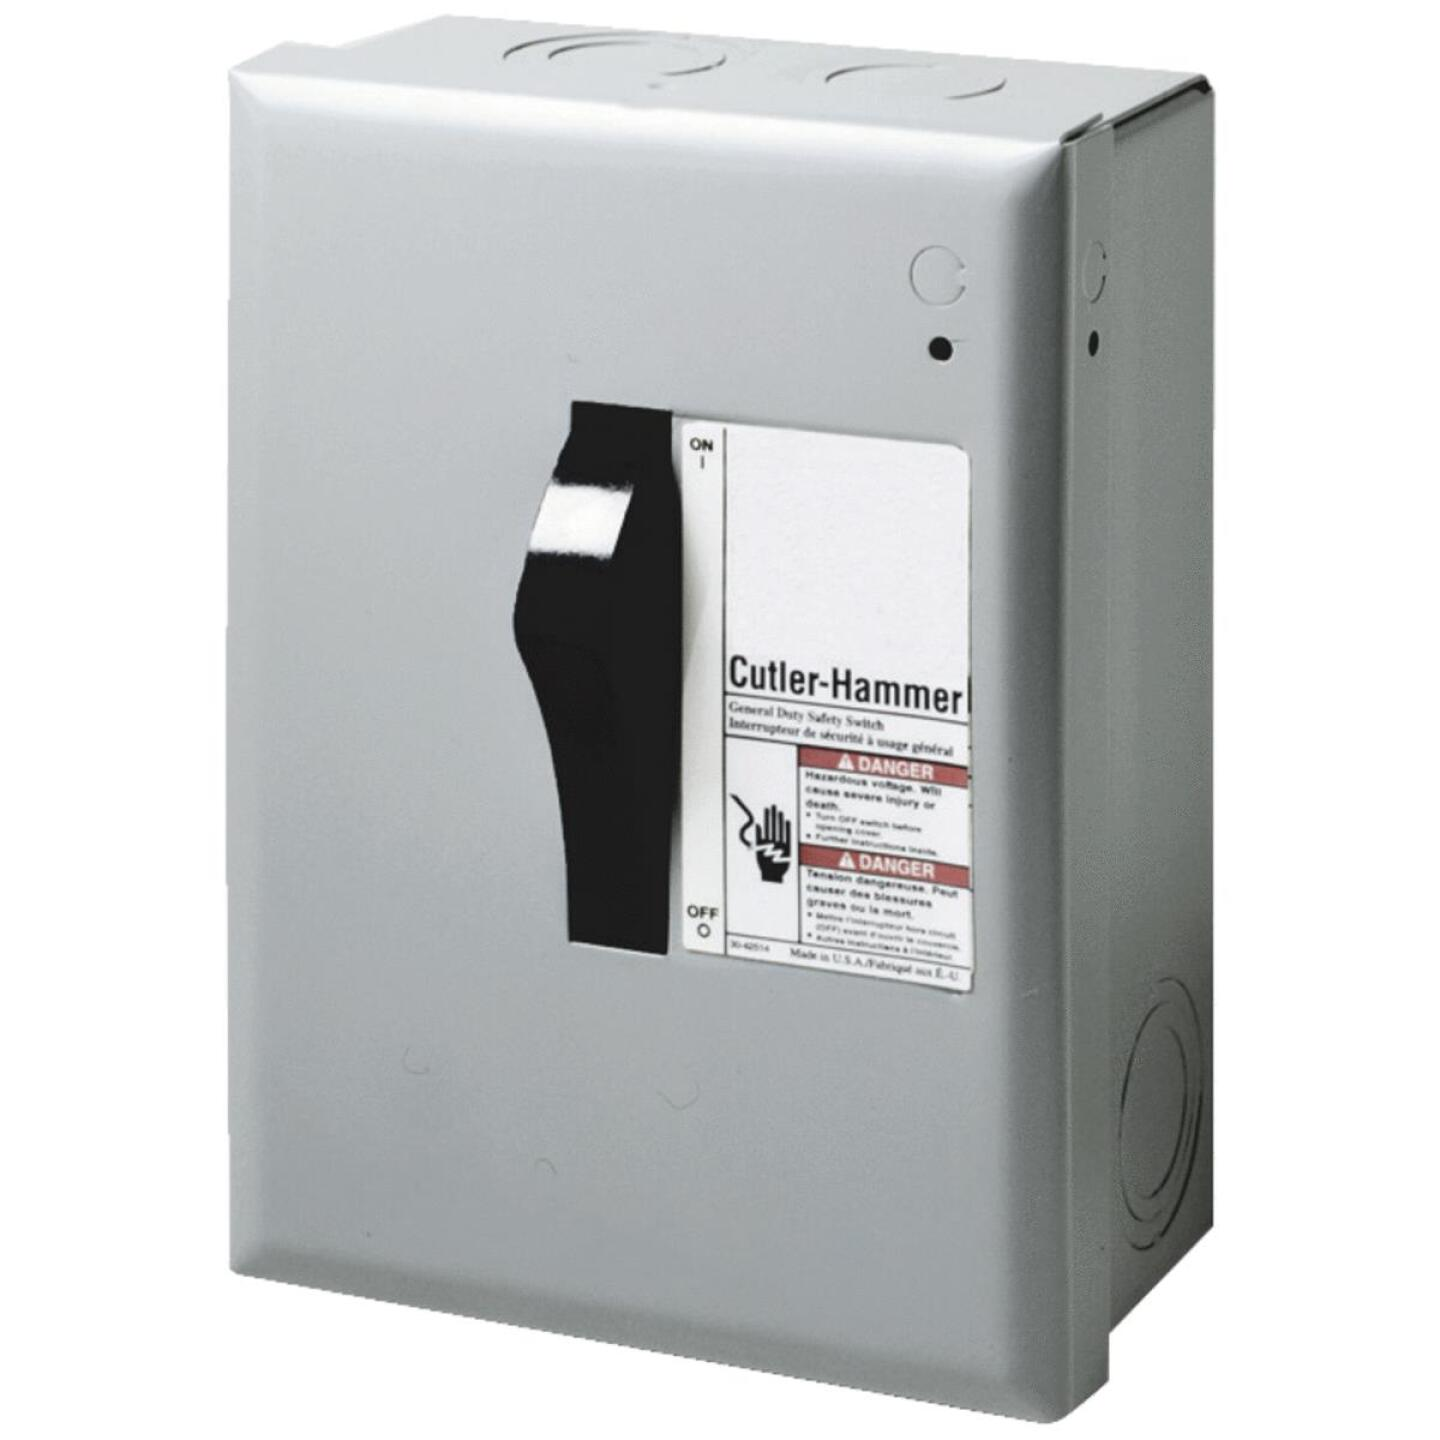 Eaton 30A DP Series Indoor Safety Switch Image 1